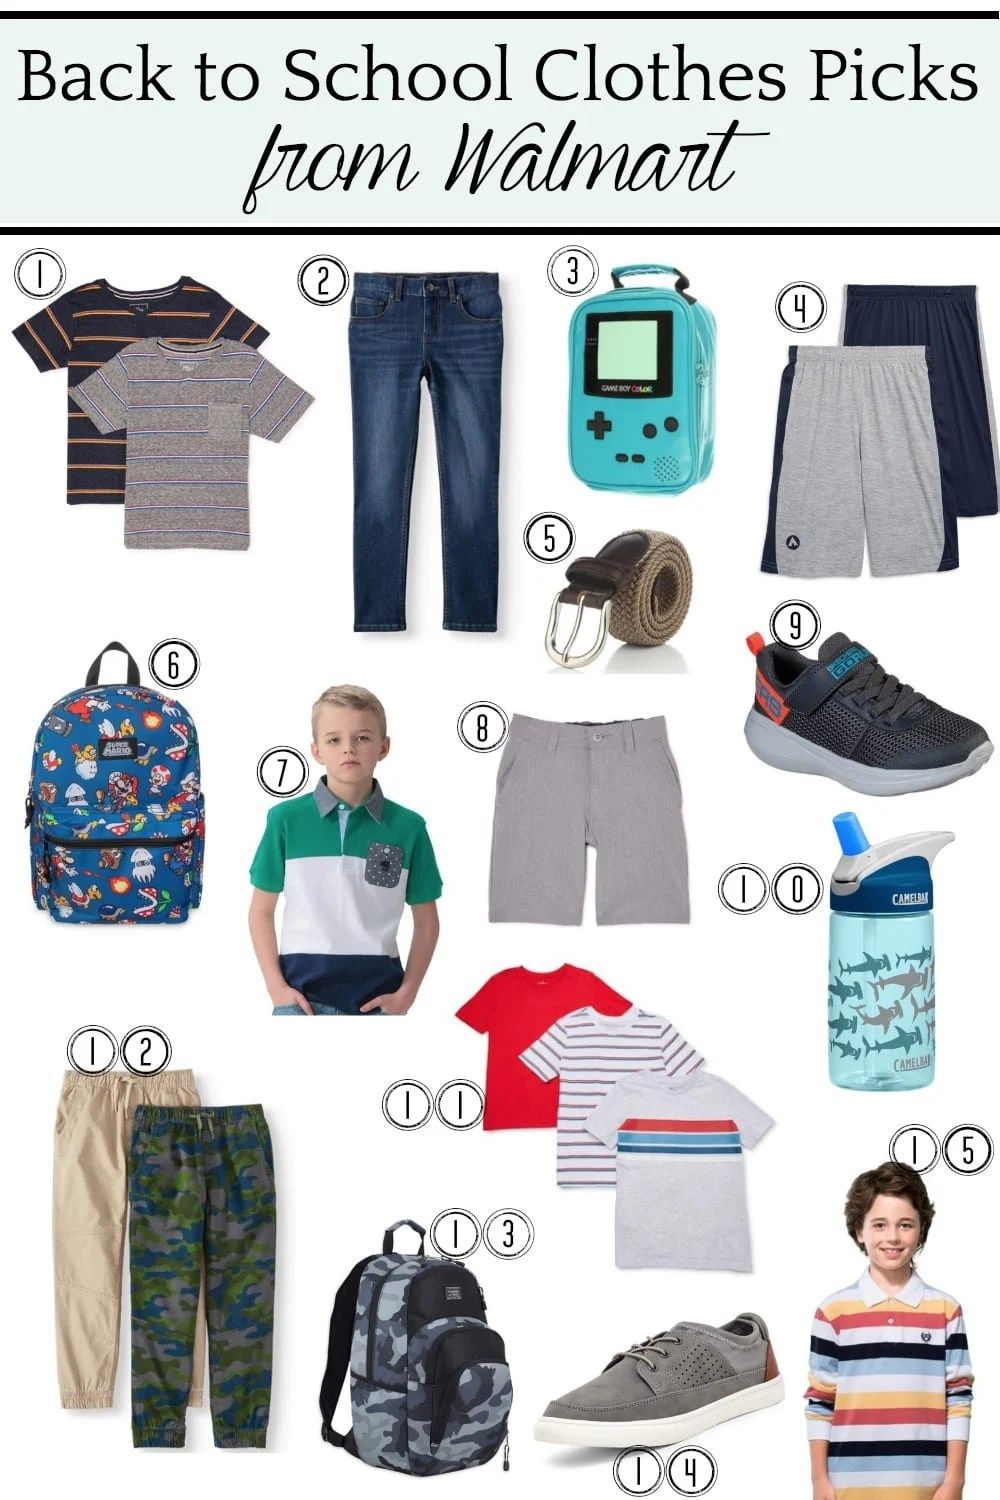 Back to School Clothes Picks from @walmart for Boys #ad #backtoschool